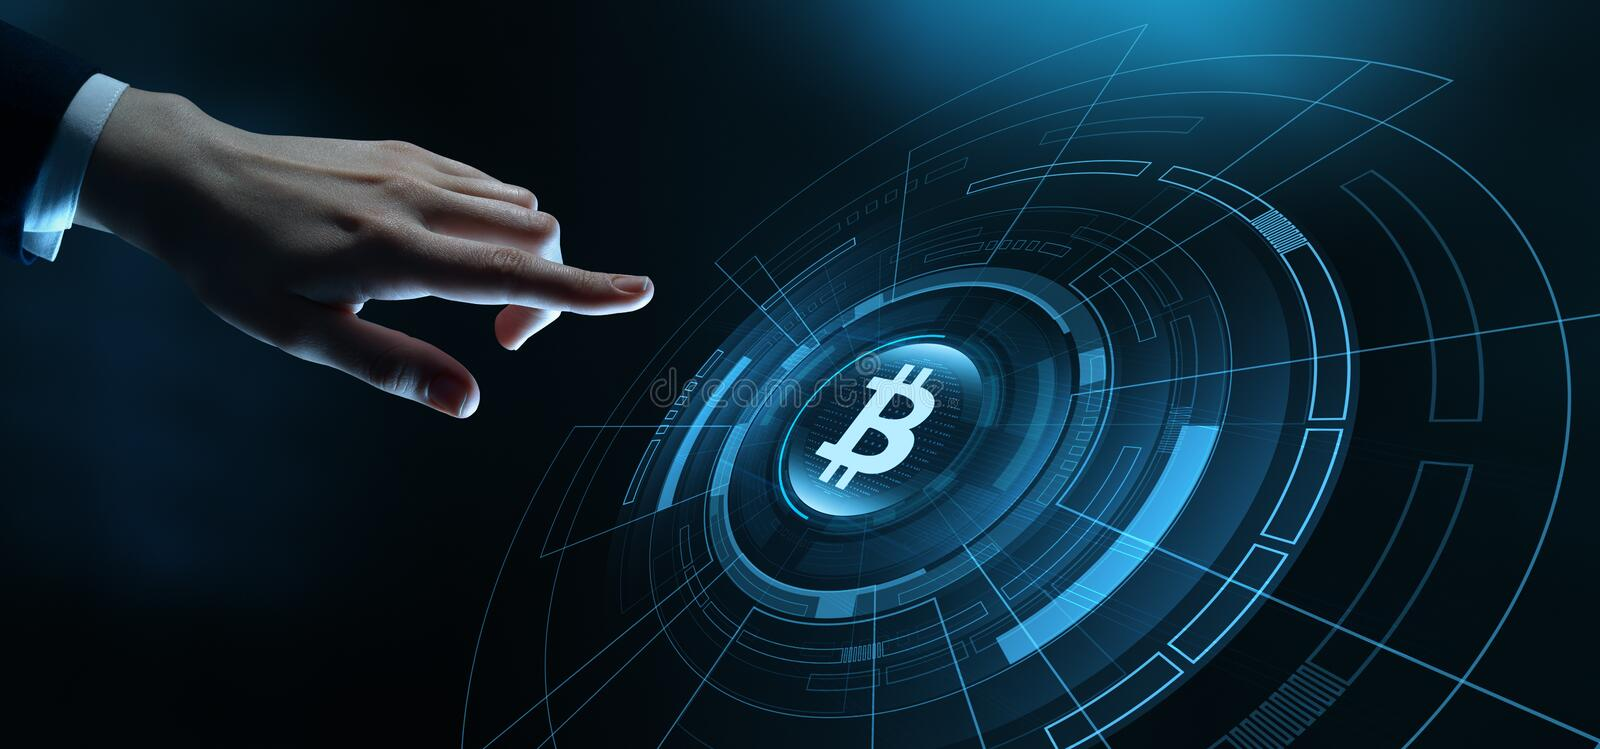 Bitcoin Cryptocurrency Currency Technology Business Internet Concept royalty free stock images